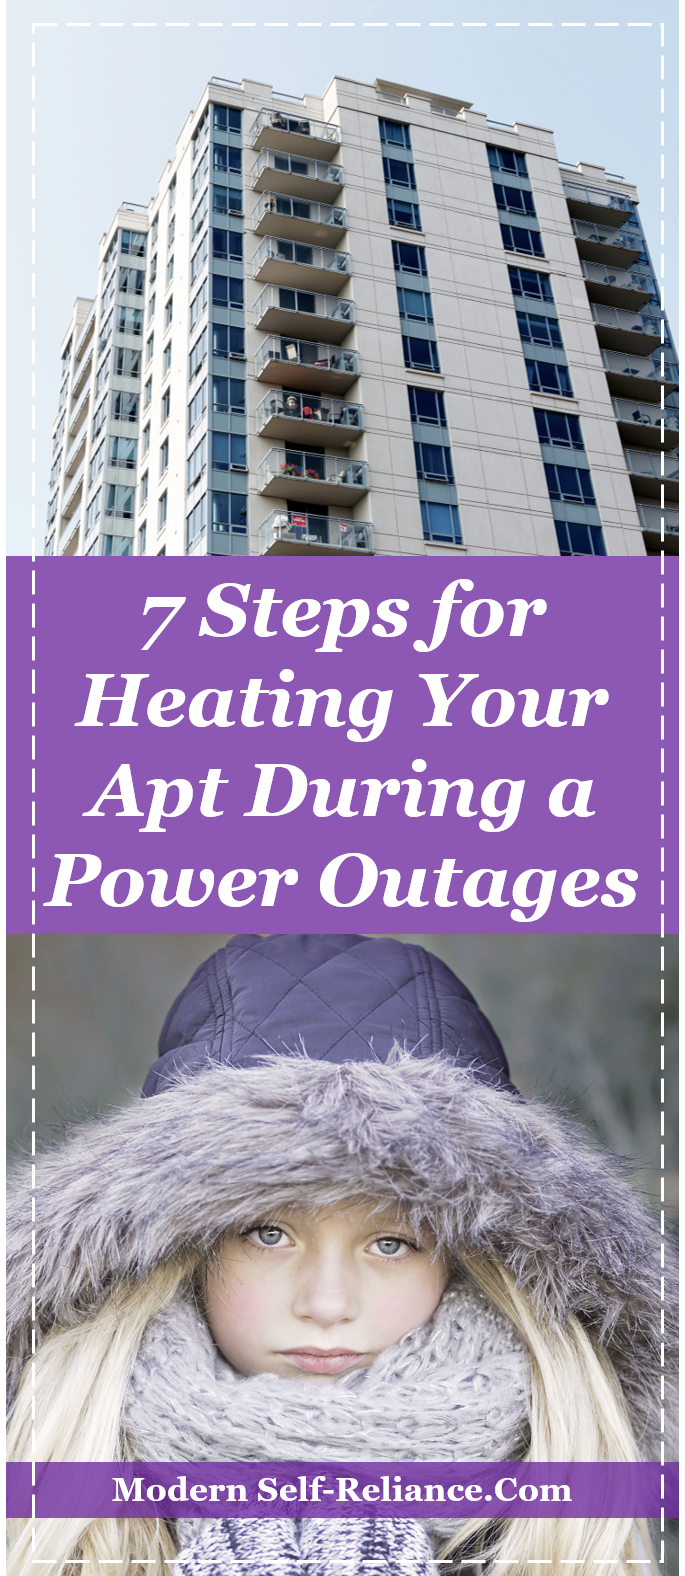 7 Steps for Heating Your Home During a Power Outage ...